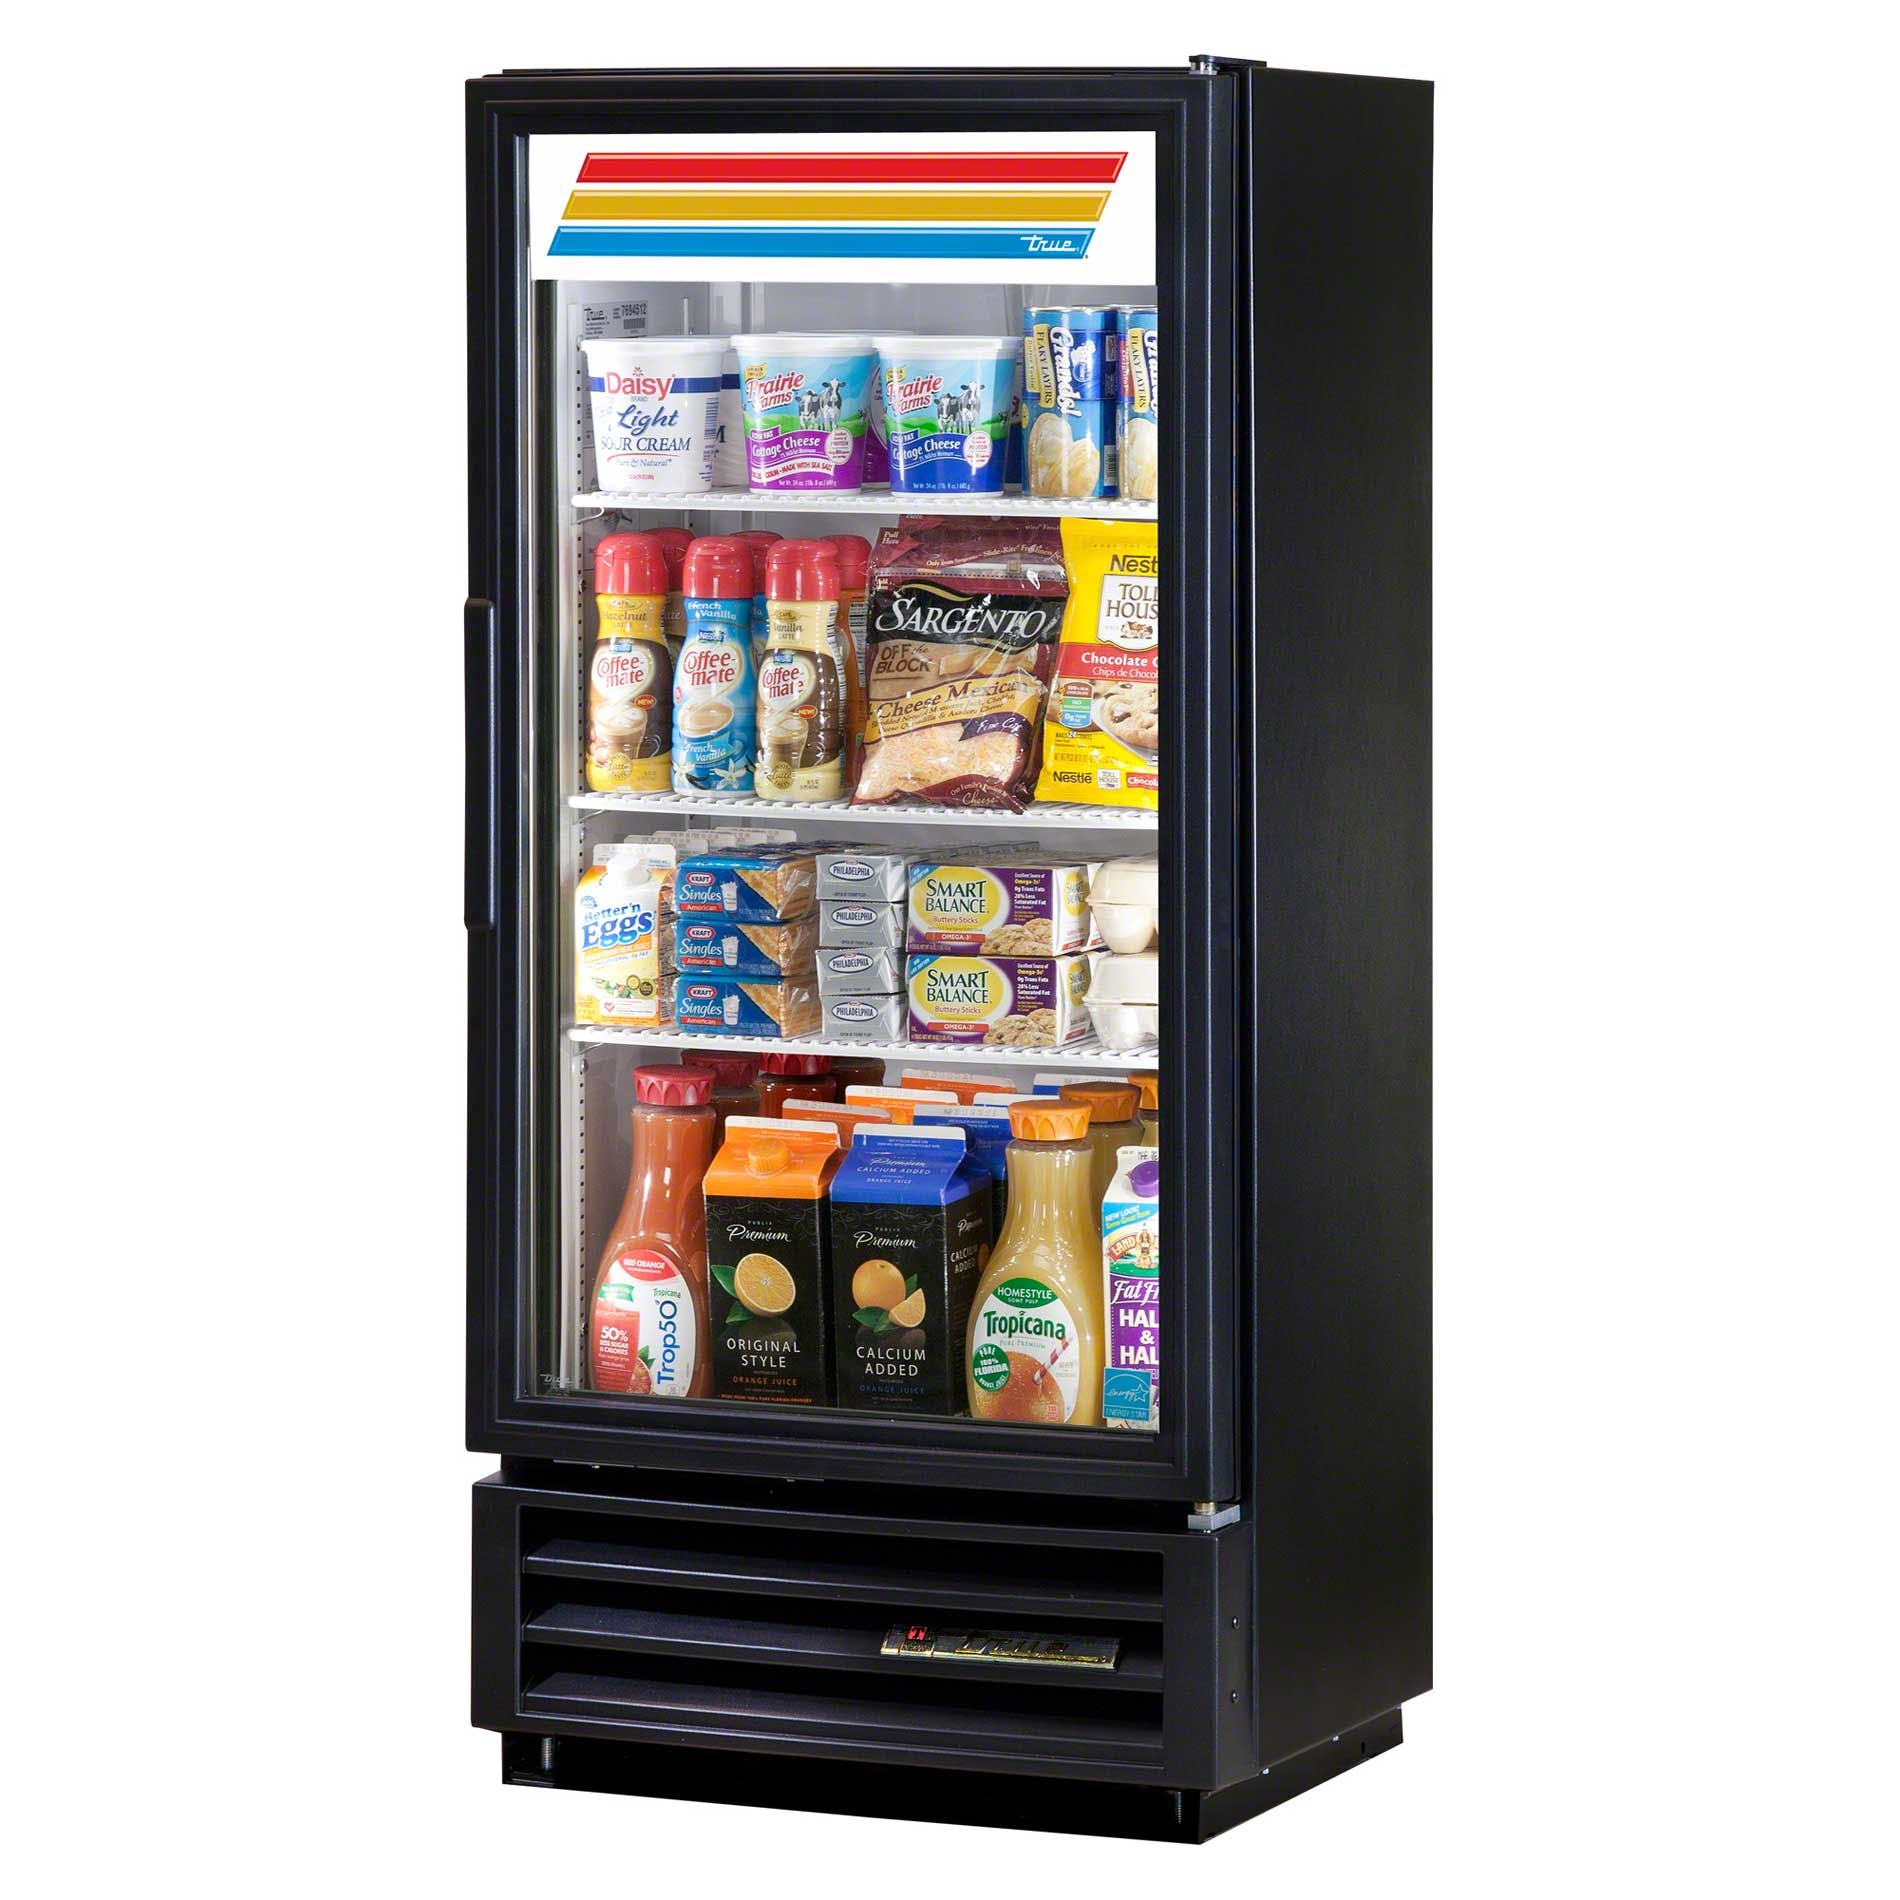 "True - GDM-10SSL-LD 25"" Swing Glass Door Refrigerated Merchandiser Refrigerator LED Commercial refrigerator sold by Food Service Warehouse"